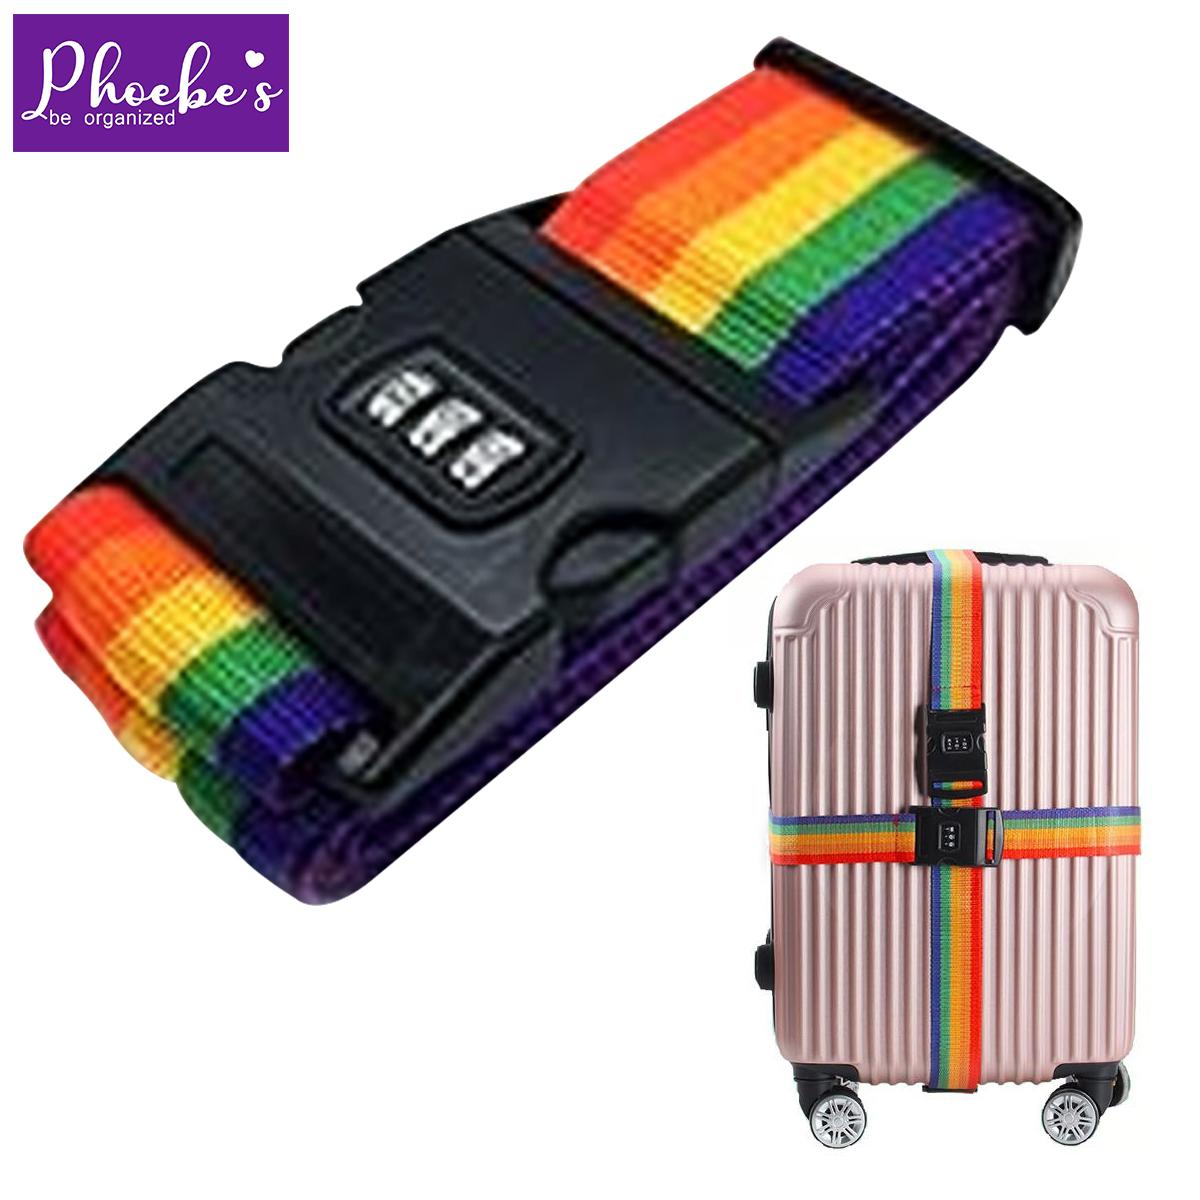 4886f360b Phoebes Travel luggage adjustable strap buckle safe belt number lock  Adjustable Bag Strap / Luggage Belt